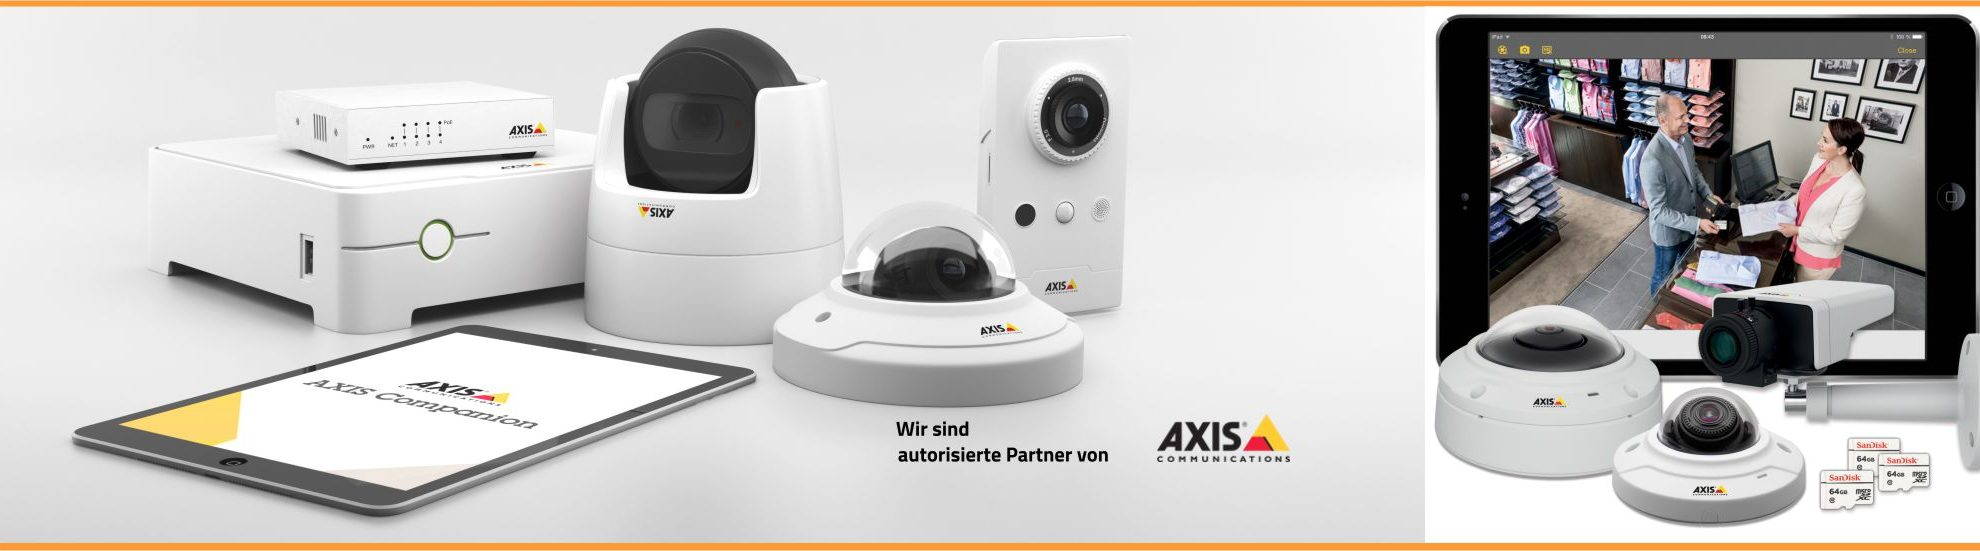 Axis Partner-Degos